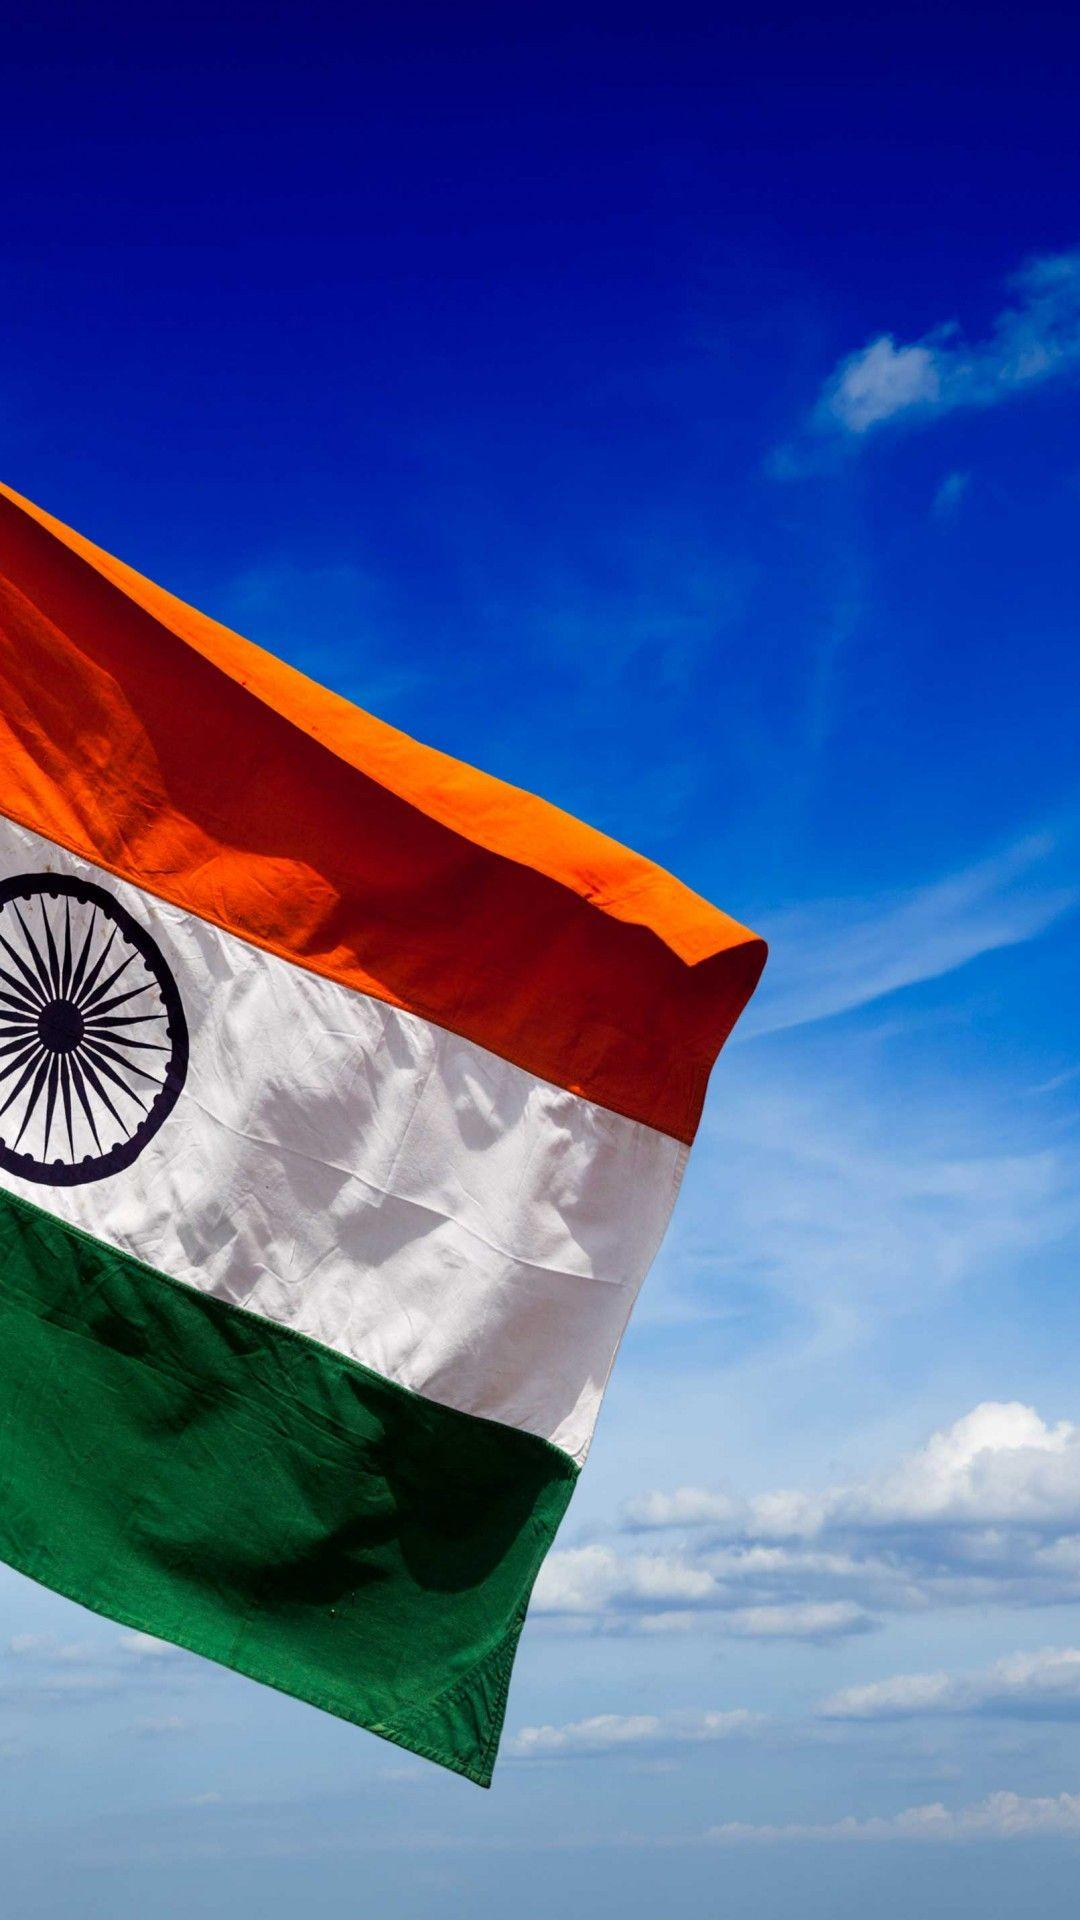 flag indian hd wallpapers background cave flying mobile 4k desktop aug backgrounds wallpaperaccess smartphone wallpapercave